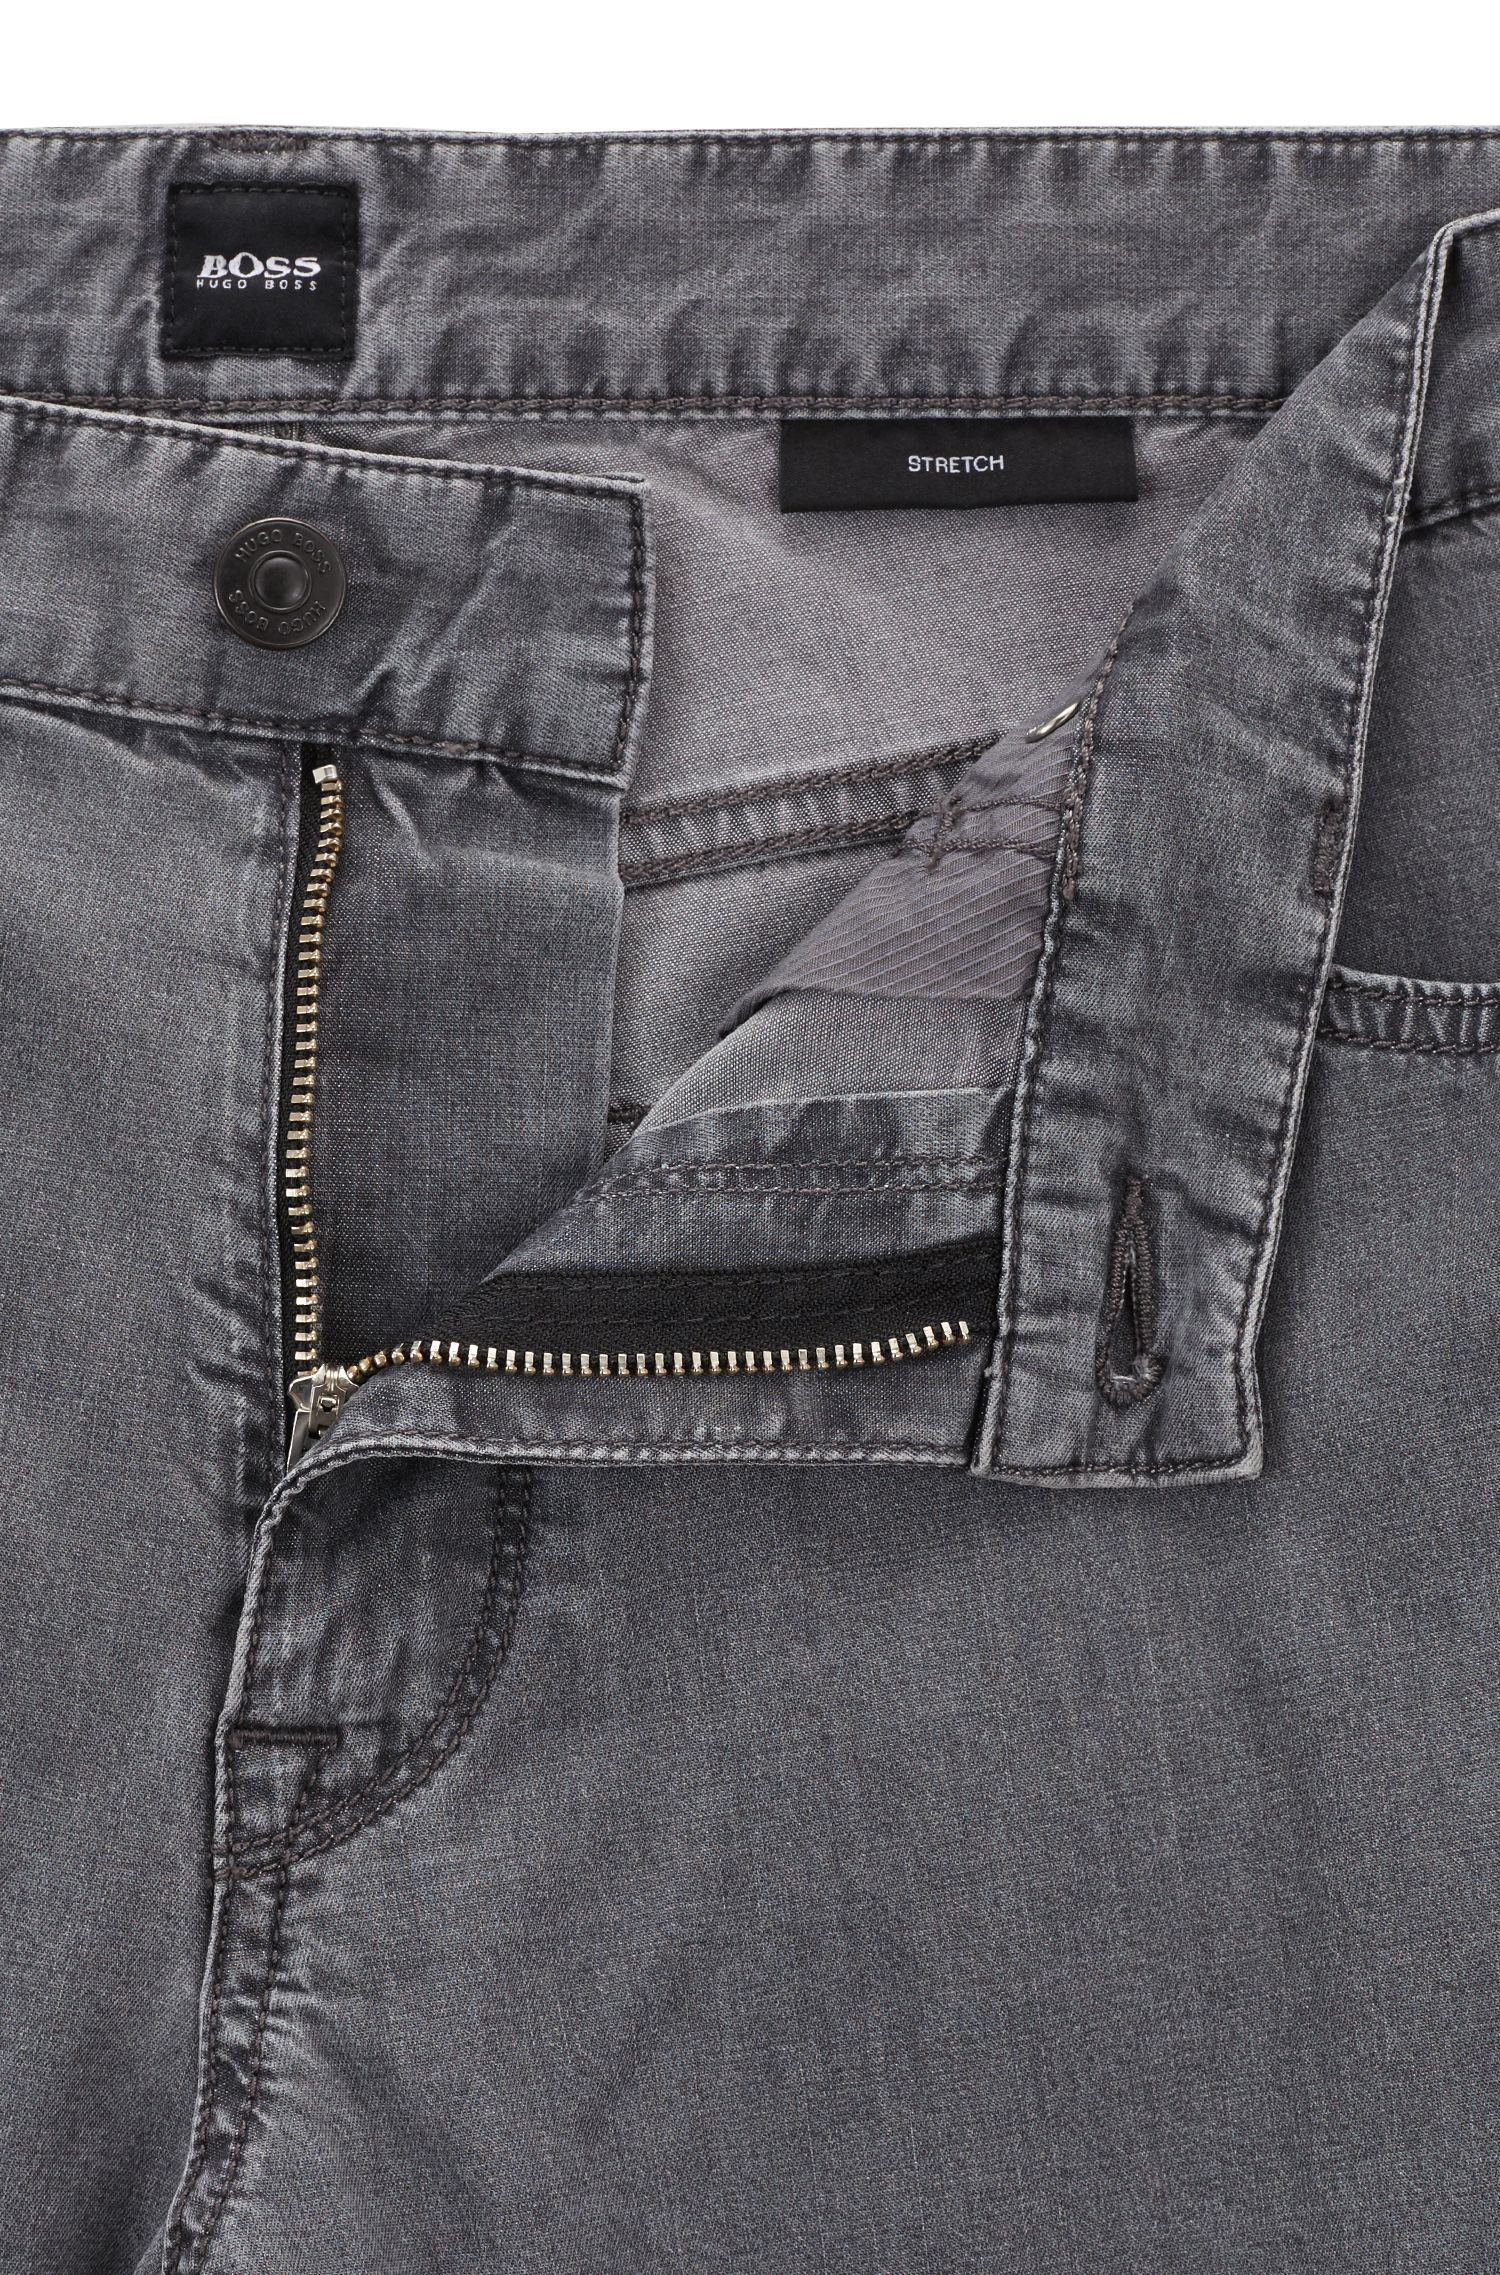 Regular-fit jeans in super-lightweight grey stretch denim